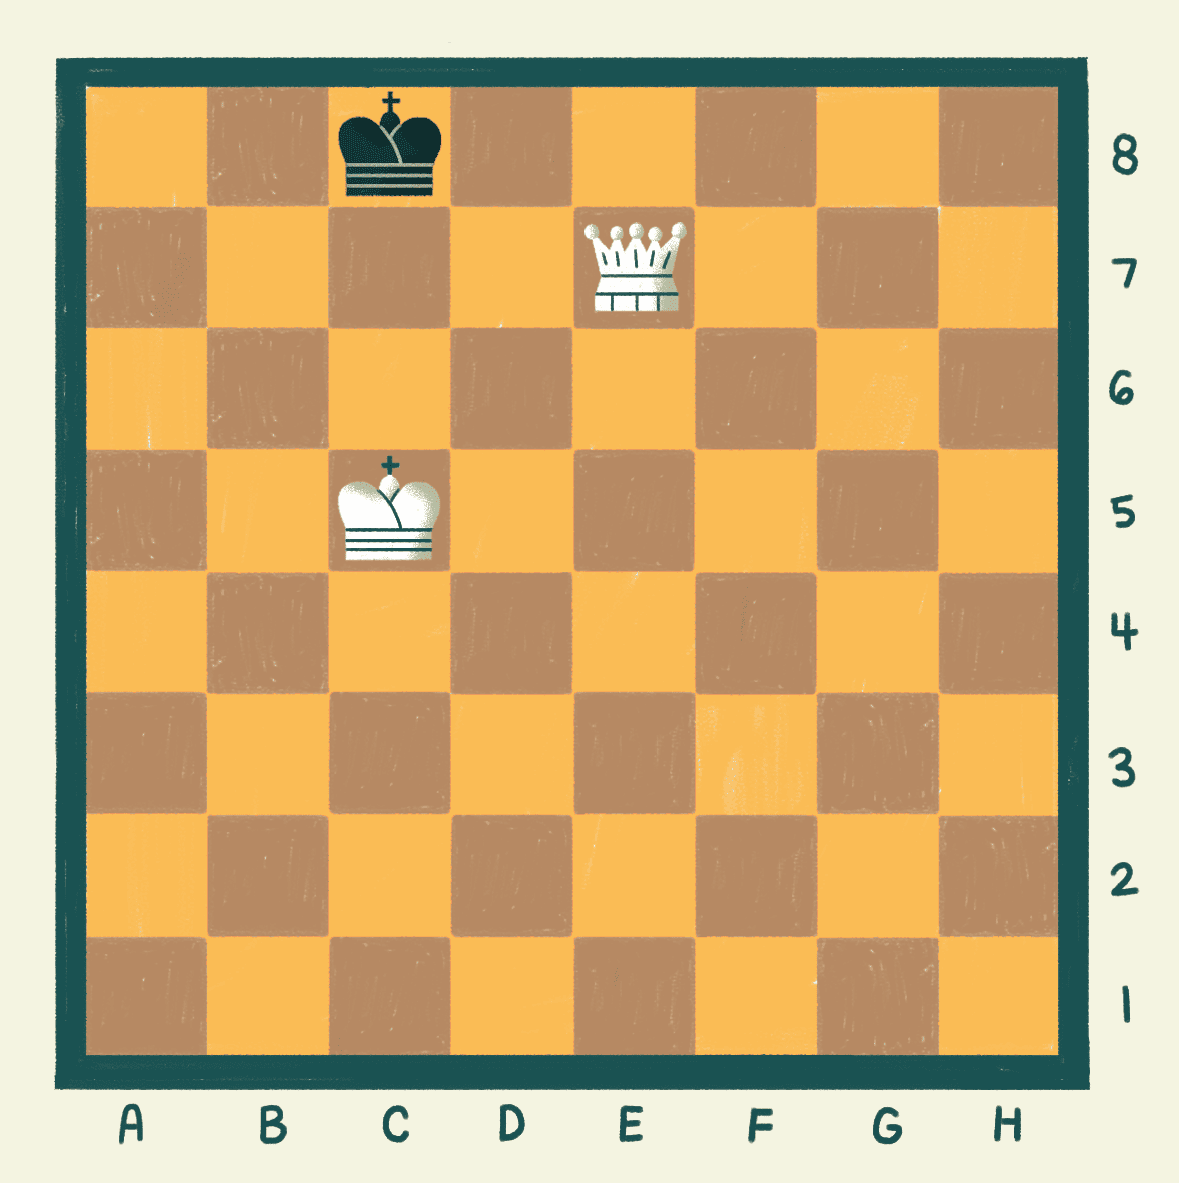 Illustration of using the king